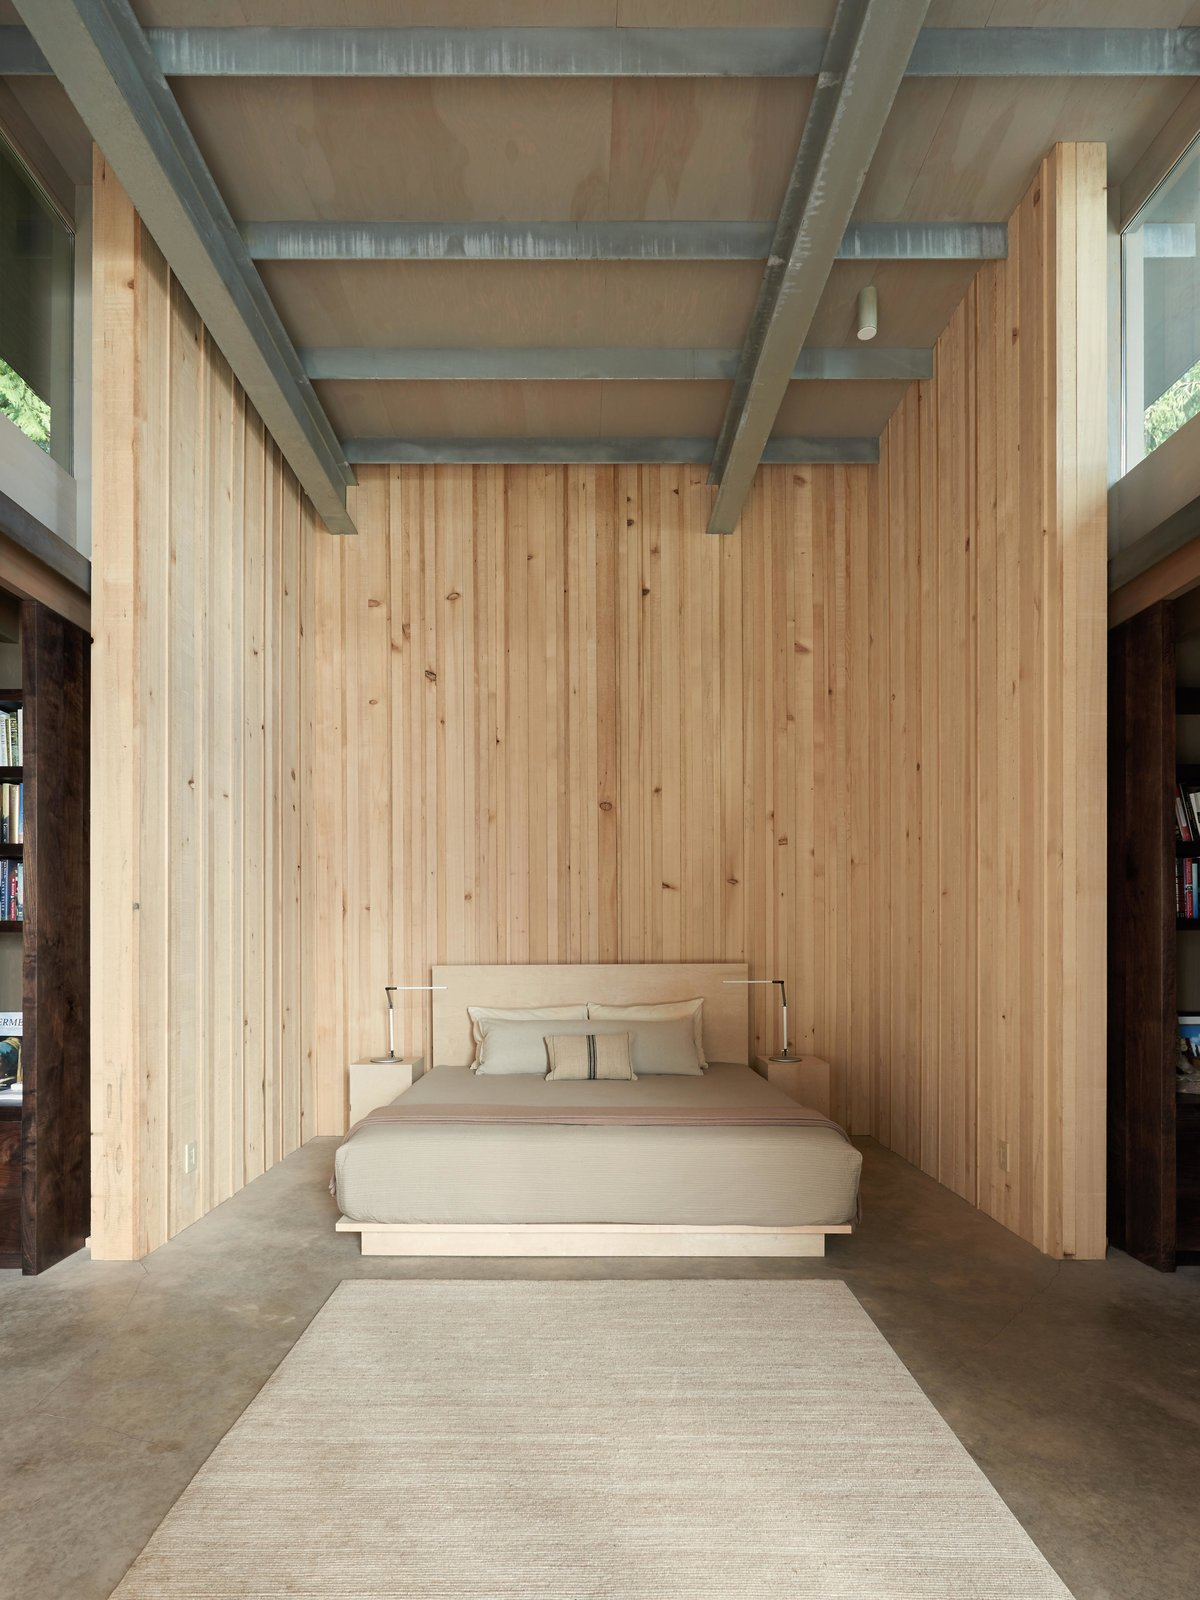 in-2014-a-master-bedroom-and-two-guest-rooms-were-added-as-well-as-a-library-that-also-works-as-circulation-increasing-the-square-footage-of-the.jpg